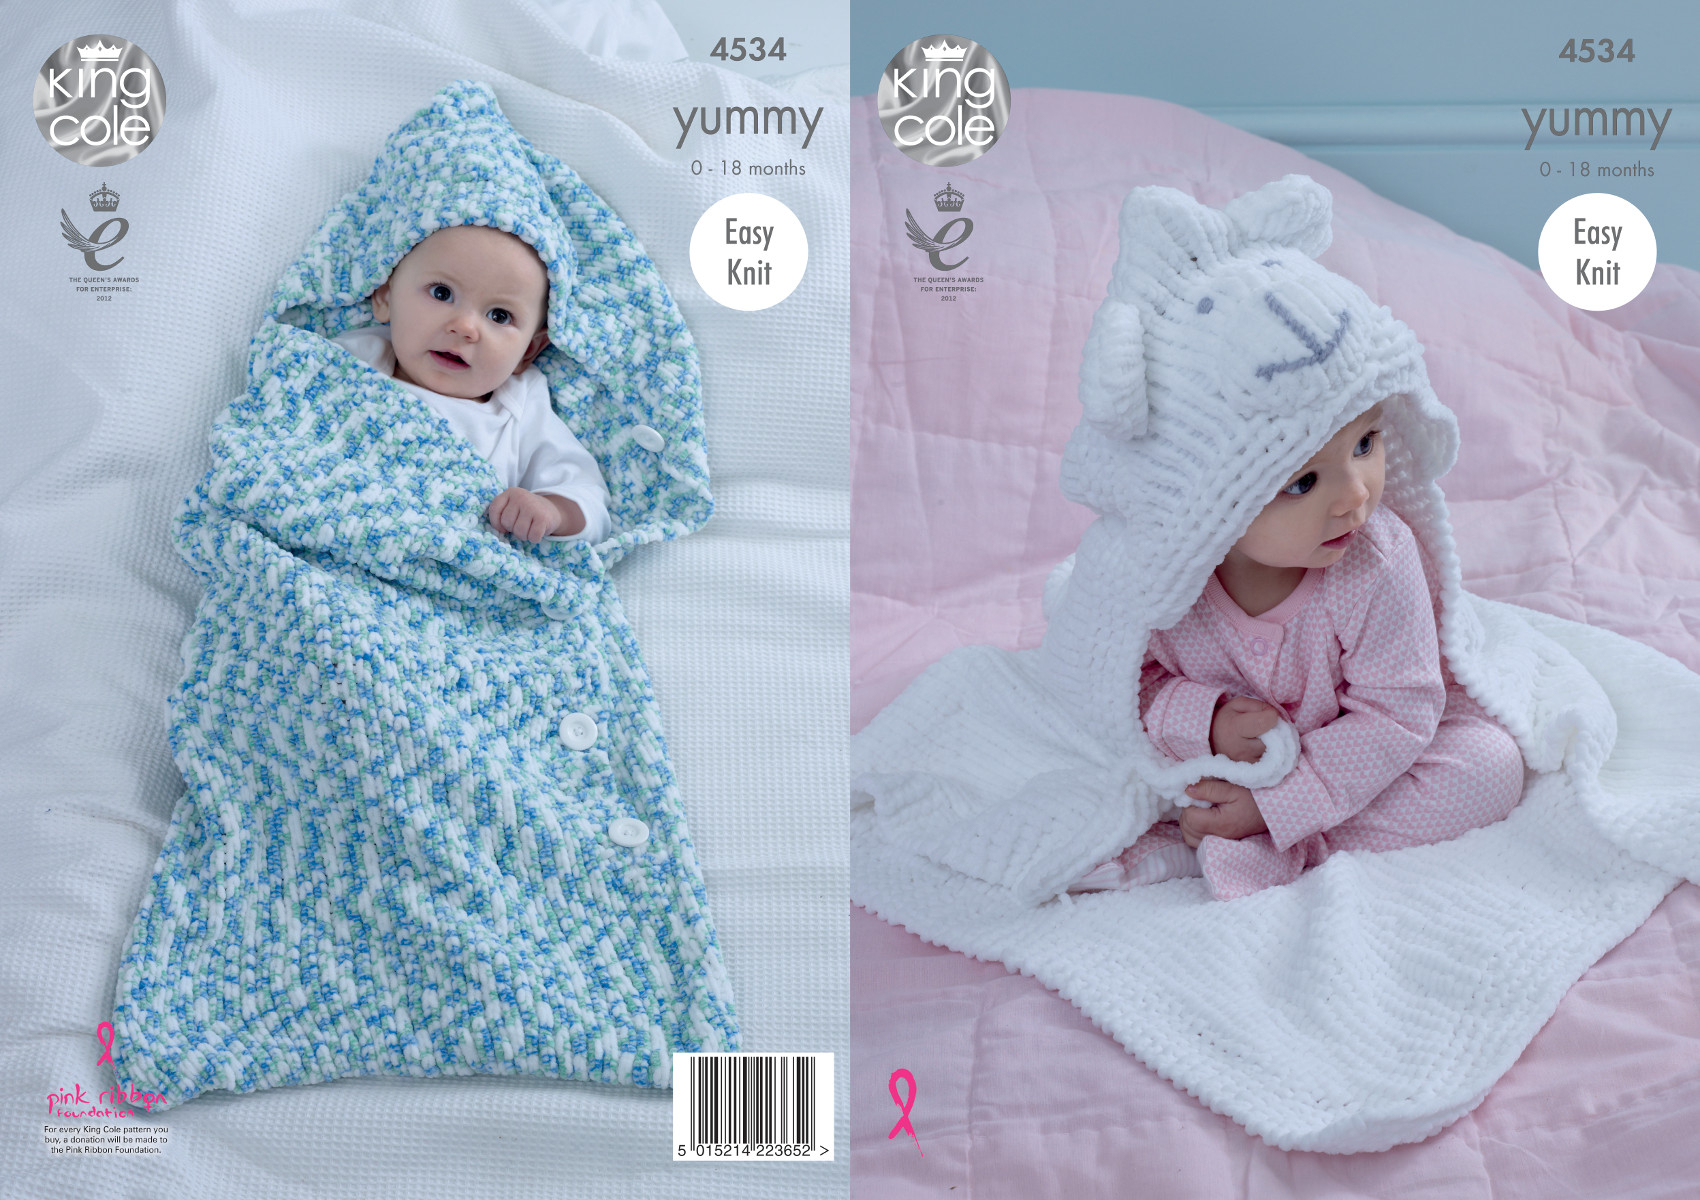 Baby Girl Blanket Knitting Patterns Details About Easy Knit Ba Cocoon Sheep Blanket Knitting Pattern King Cole Yummy Chunky 4534